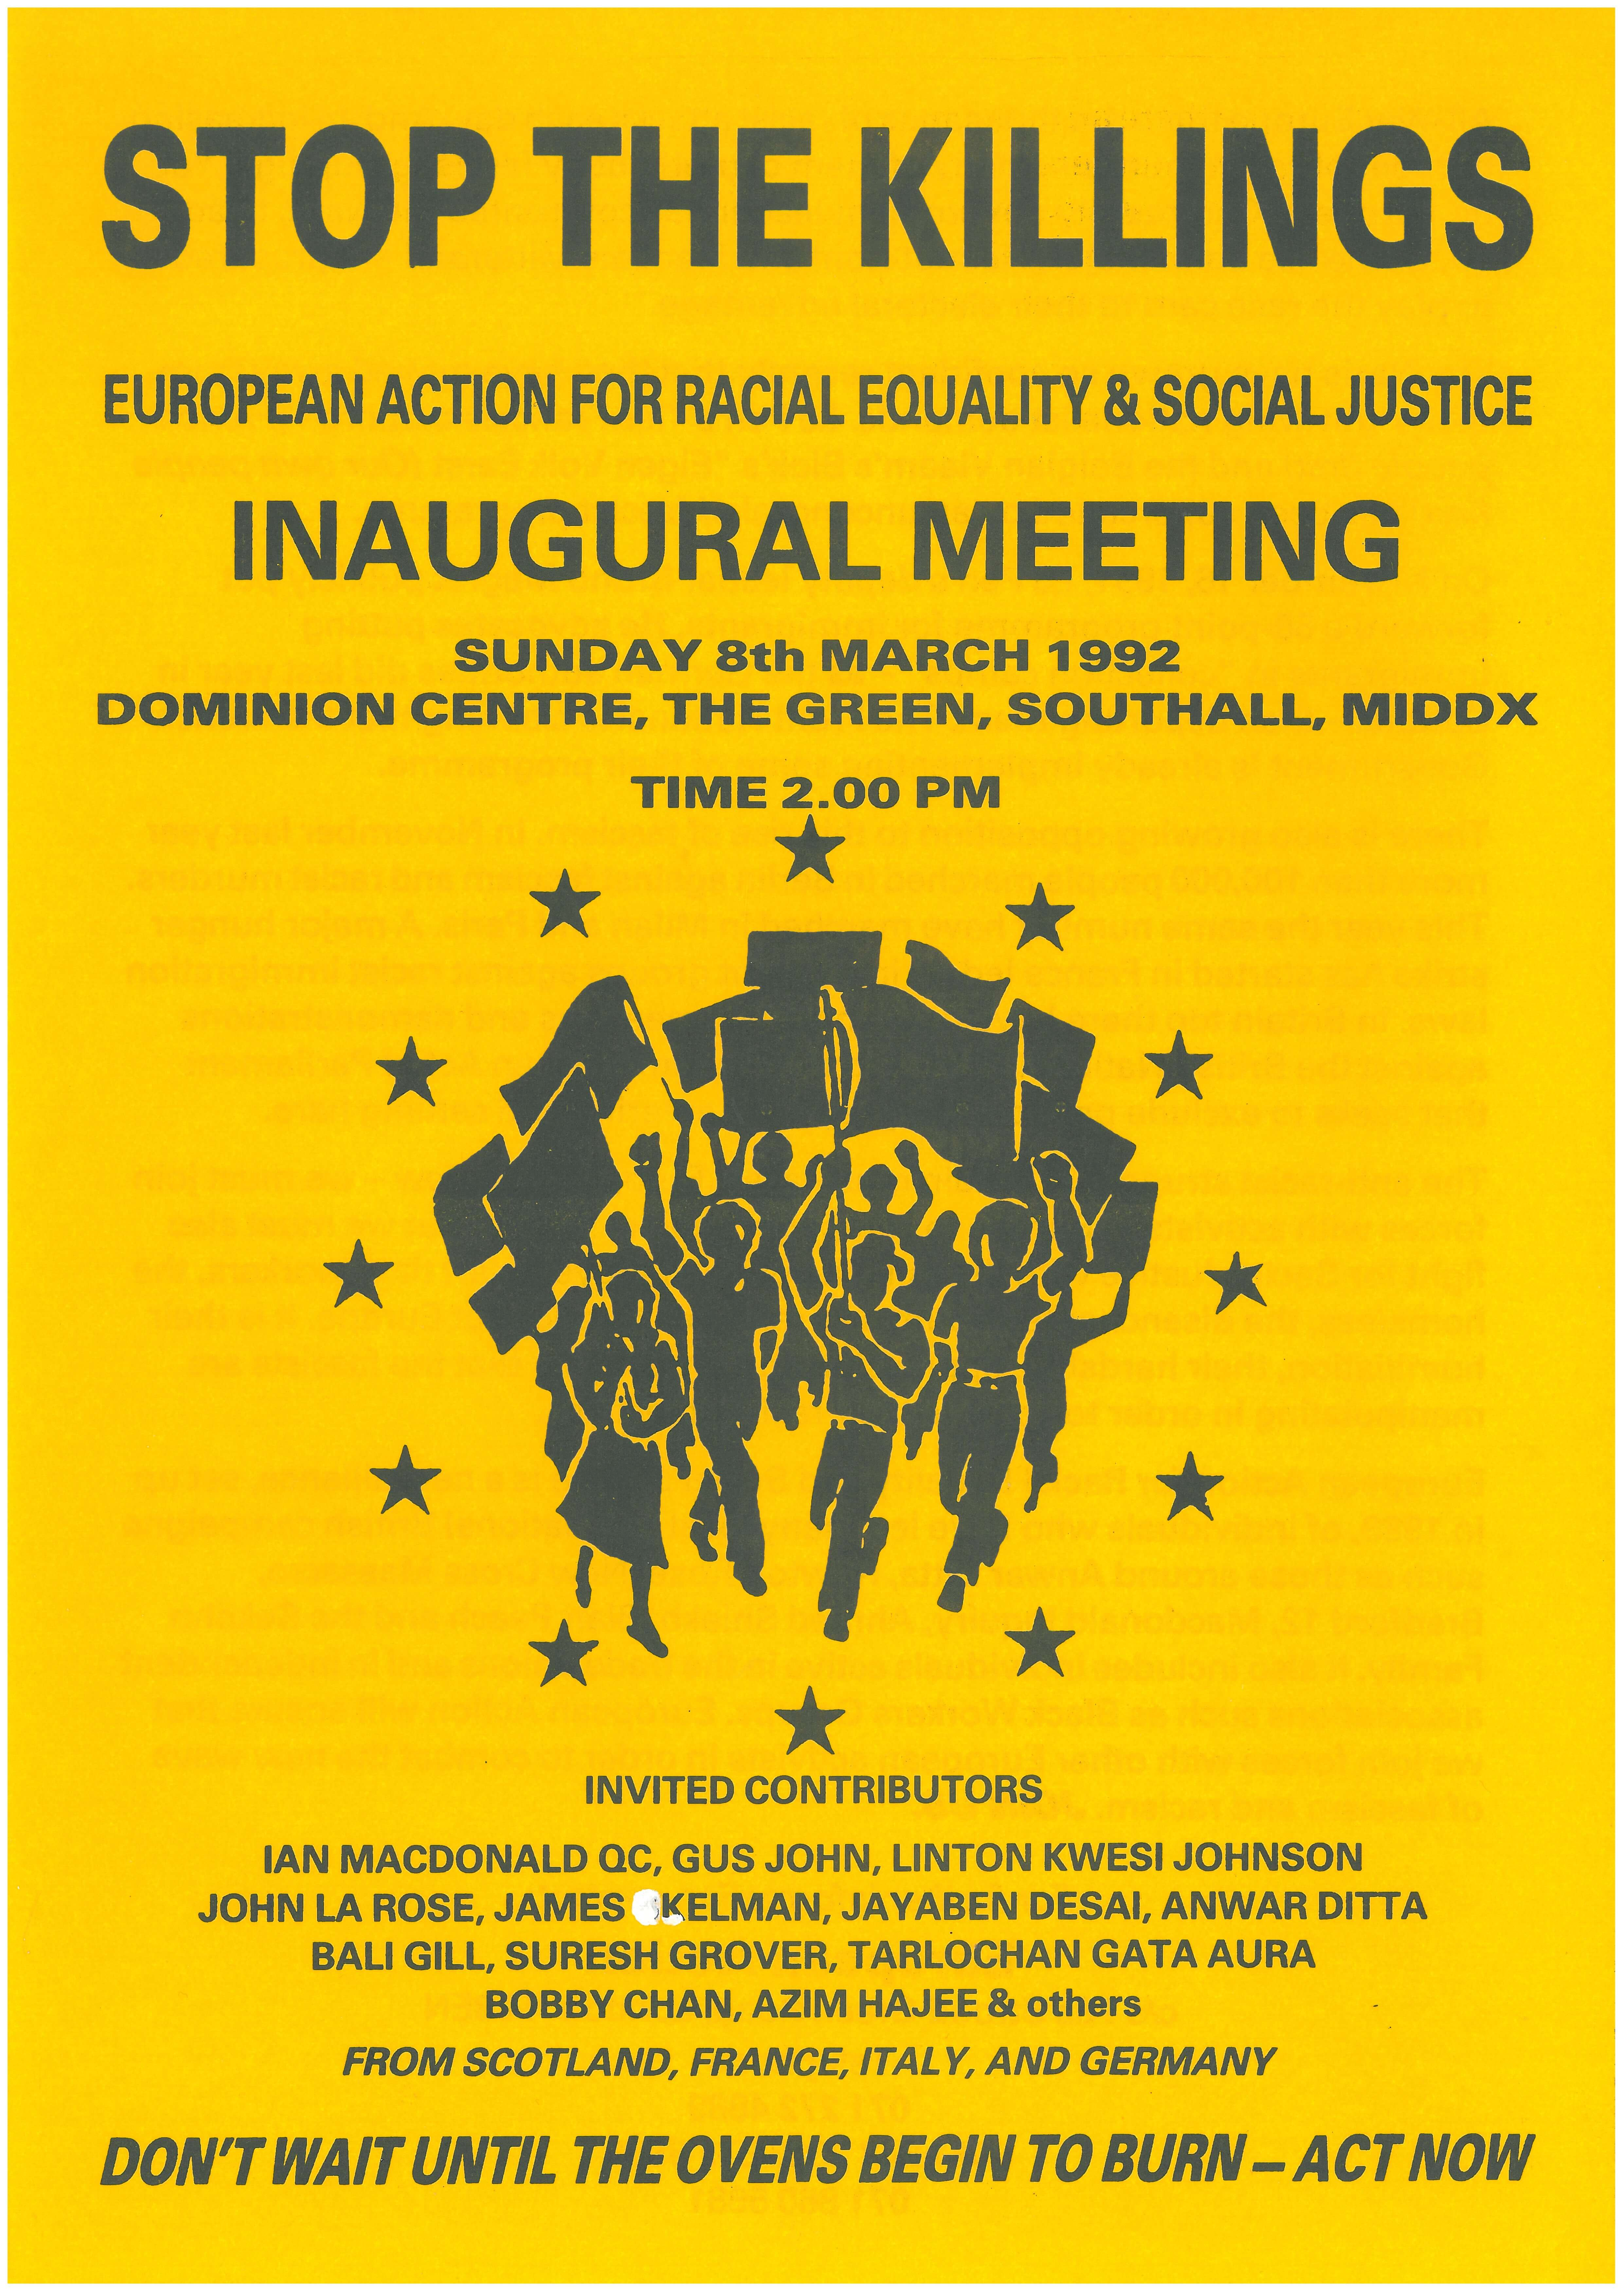 Flyer on yellow paper with black text and logo. Headed 'Stop the Killings'. It carries the European Action logo, a group of people marching forwards, waving flags.